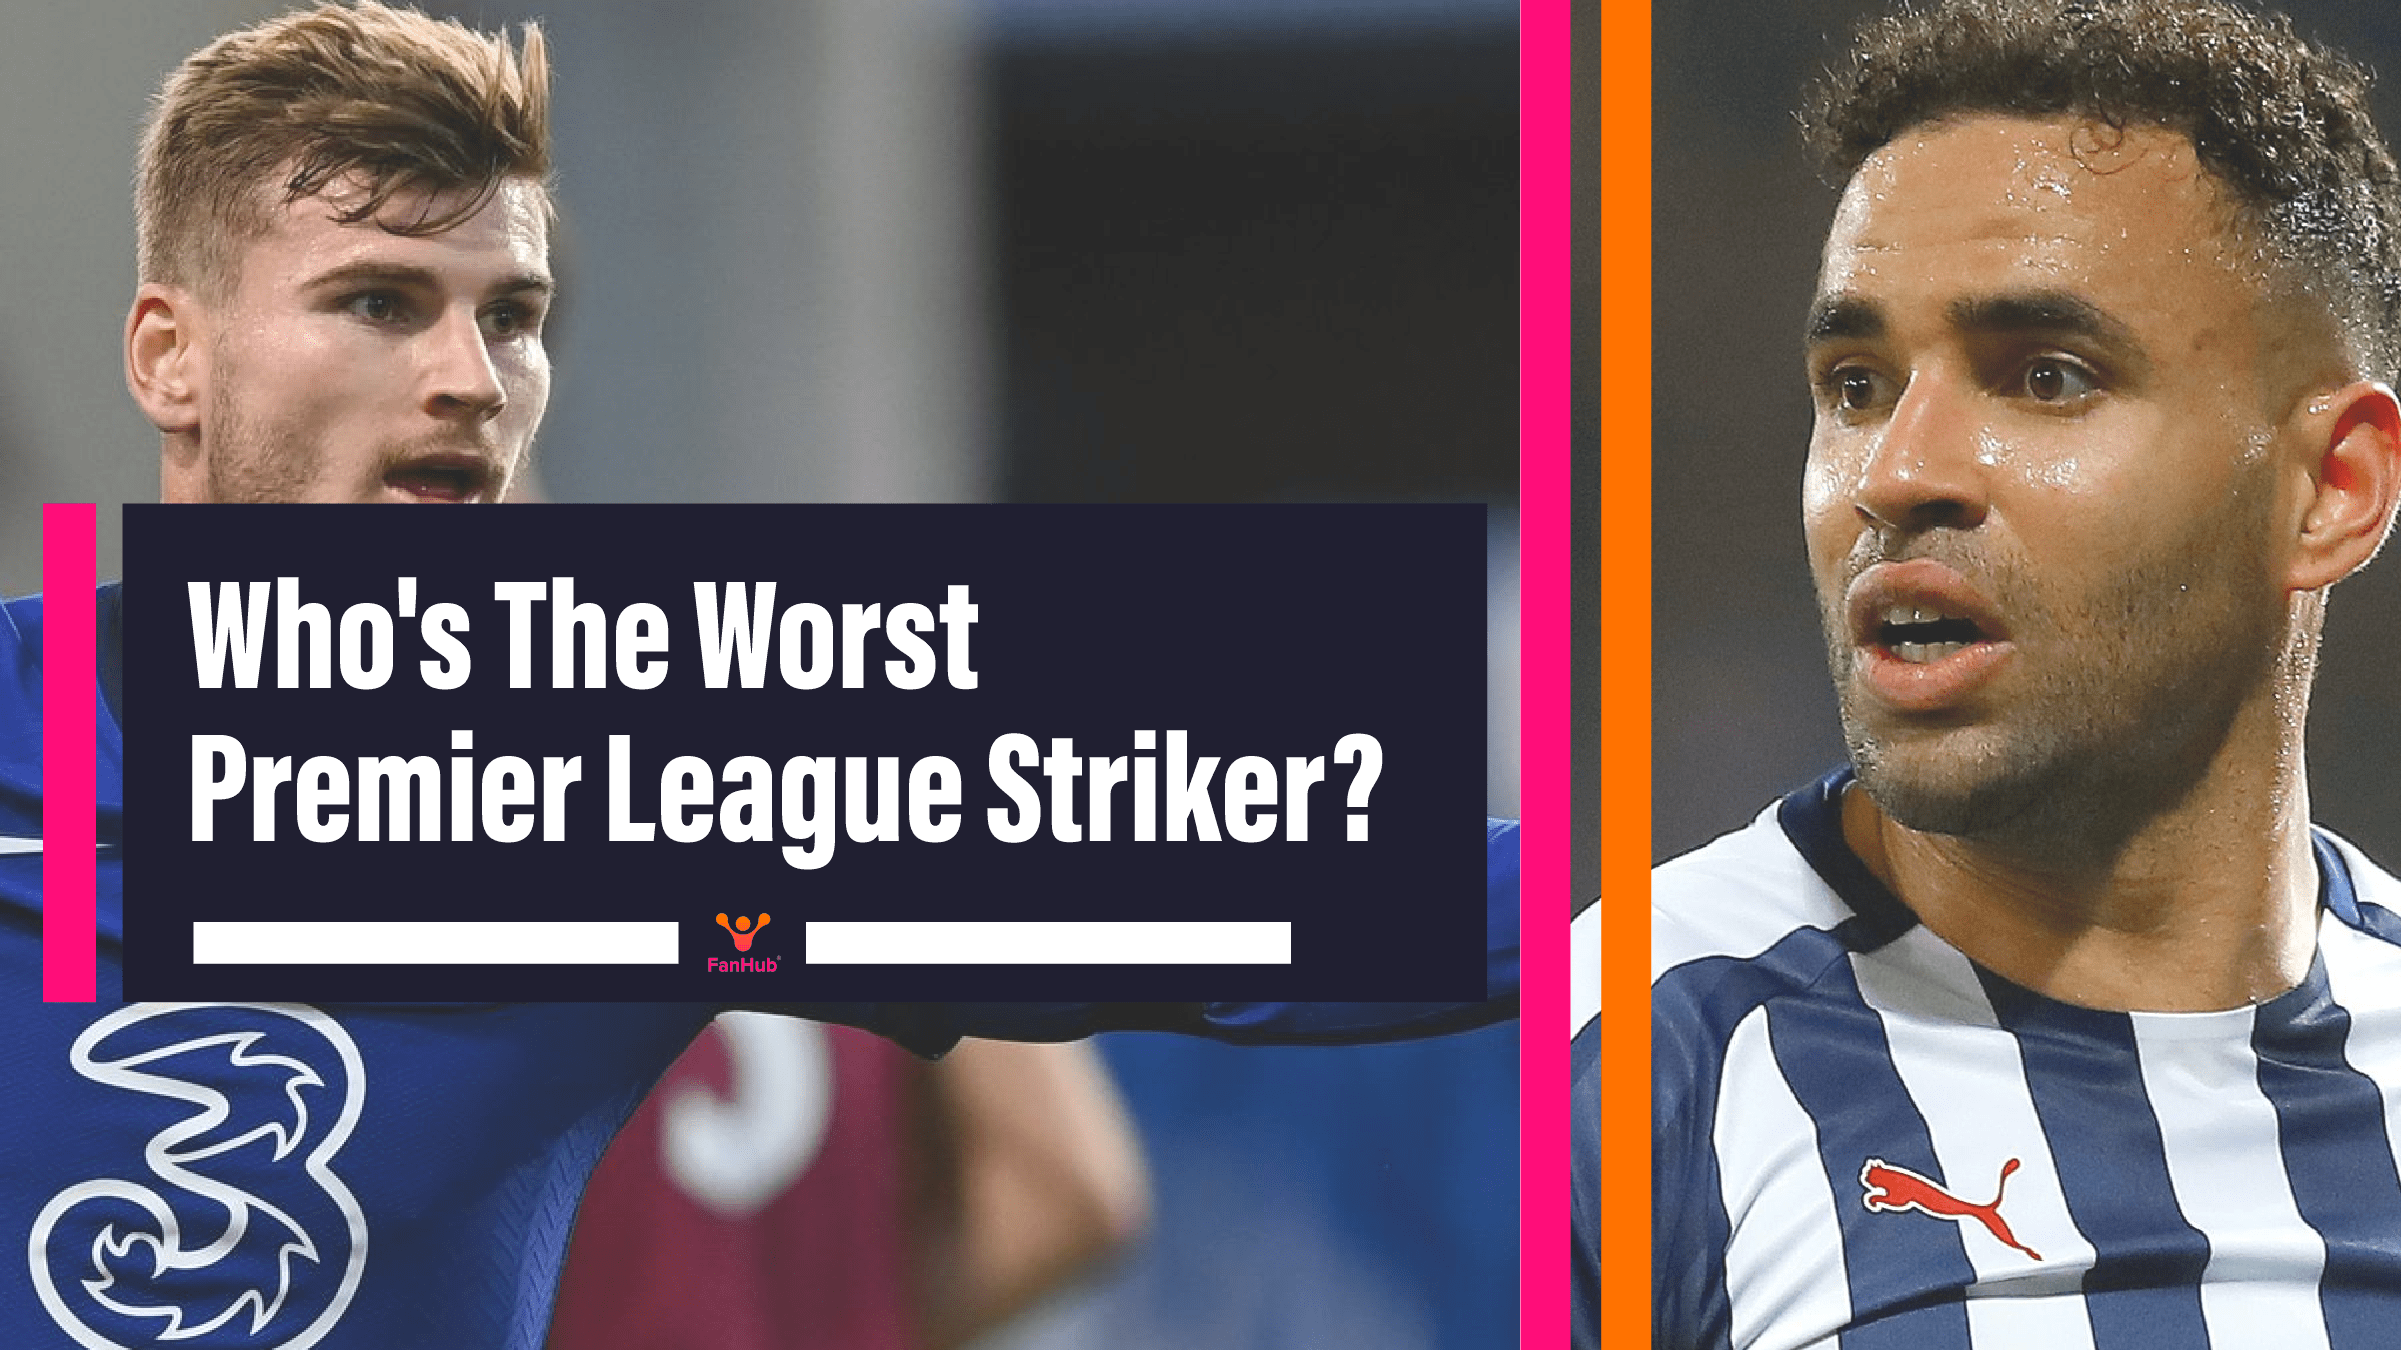 Who's The Worst Premier League Striker: Timo Werner or Hal Robson-Kanu?